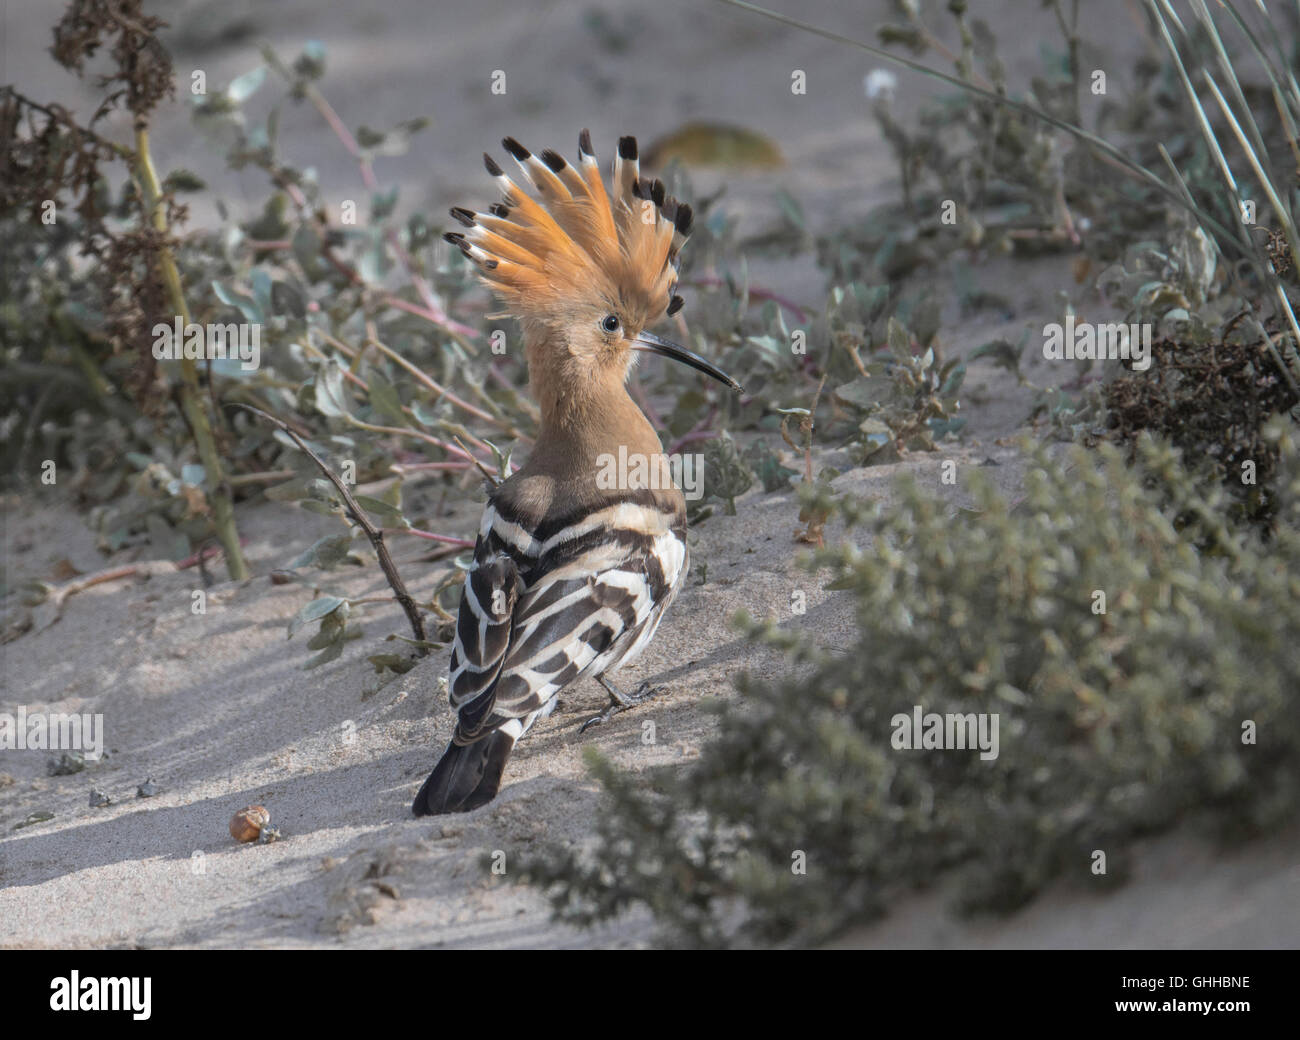 Brancaster, Norfolk, UK. 28th September, 2016. Hoopoes are medium-sized birds with long, broad, rounded wings, slightly - Stock Image